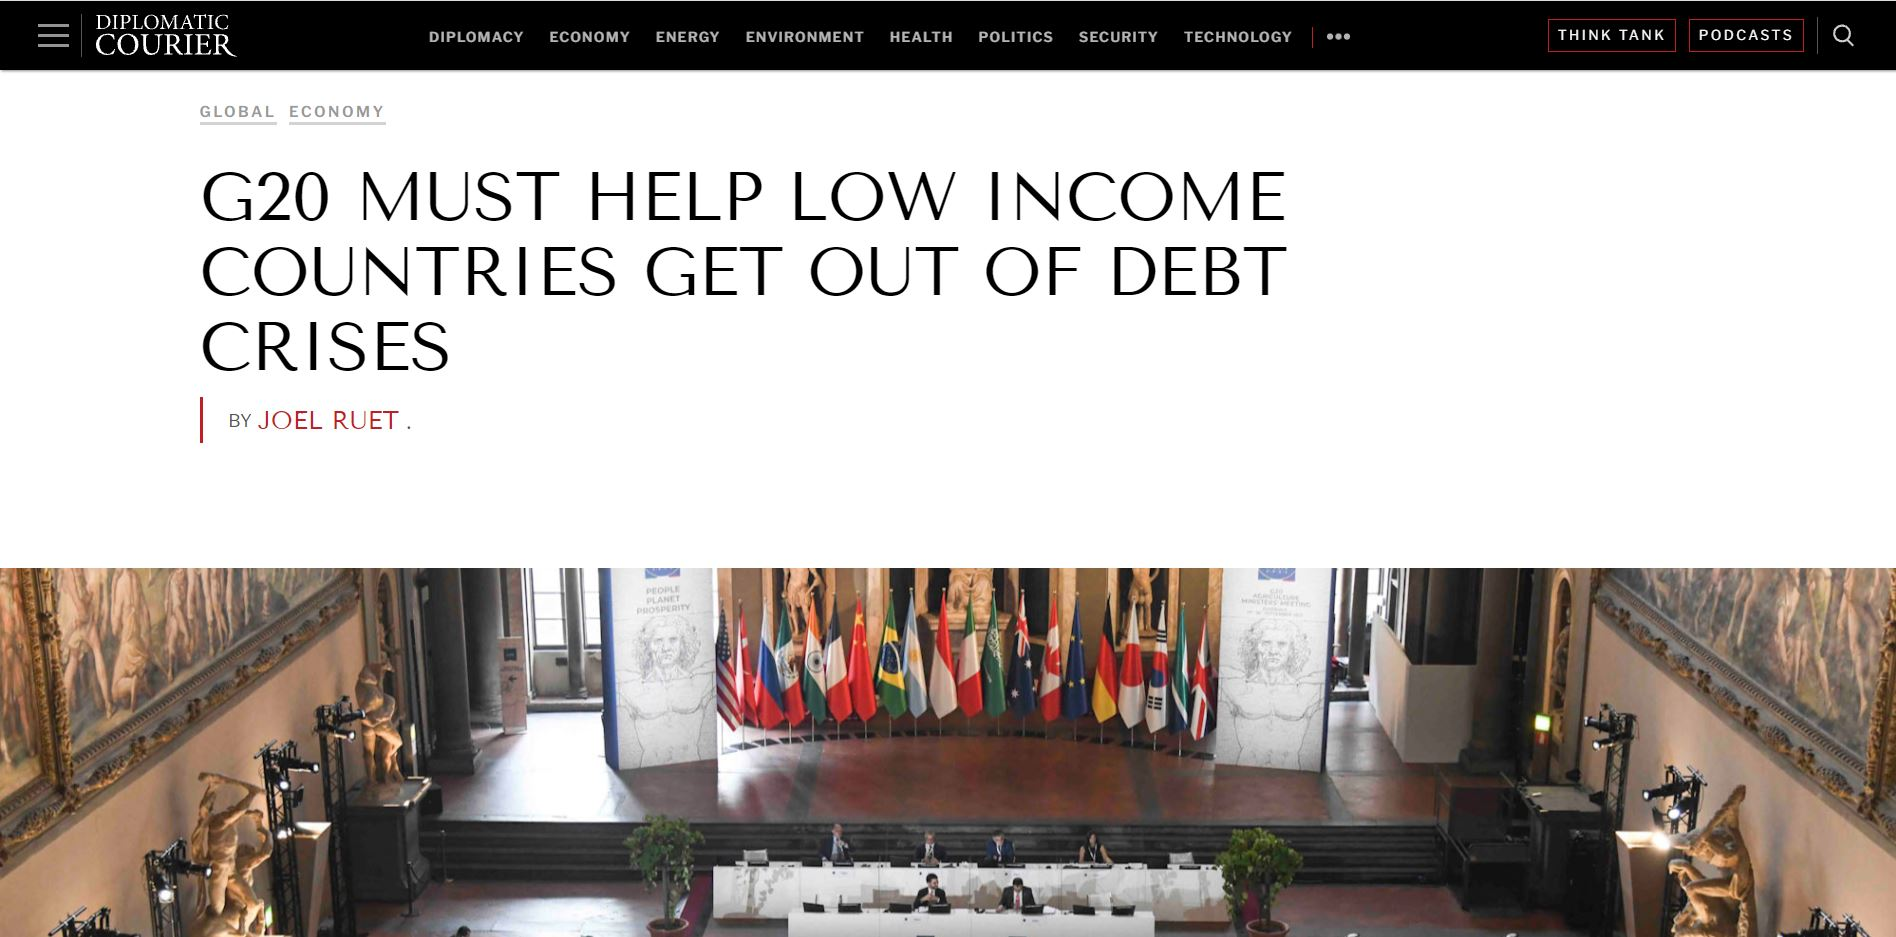 OpEd: G20 Must Help Low Income Countries Get Out of Debt Crises